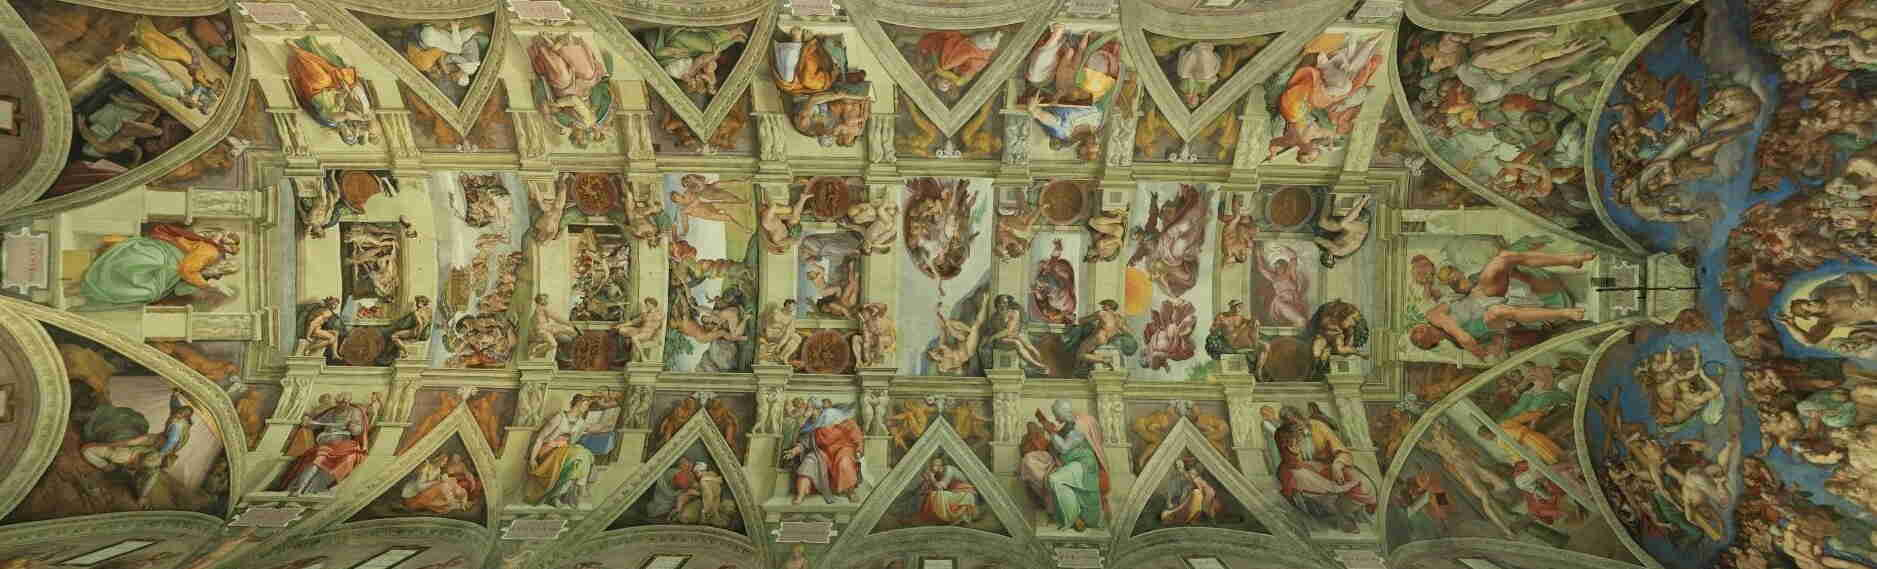 Why is the Sistine Chapel so important?